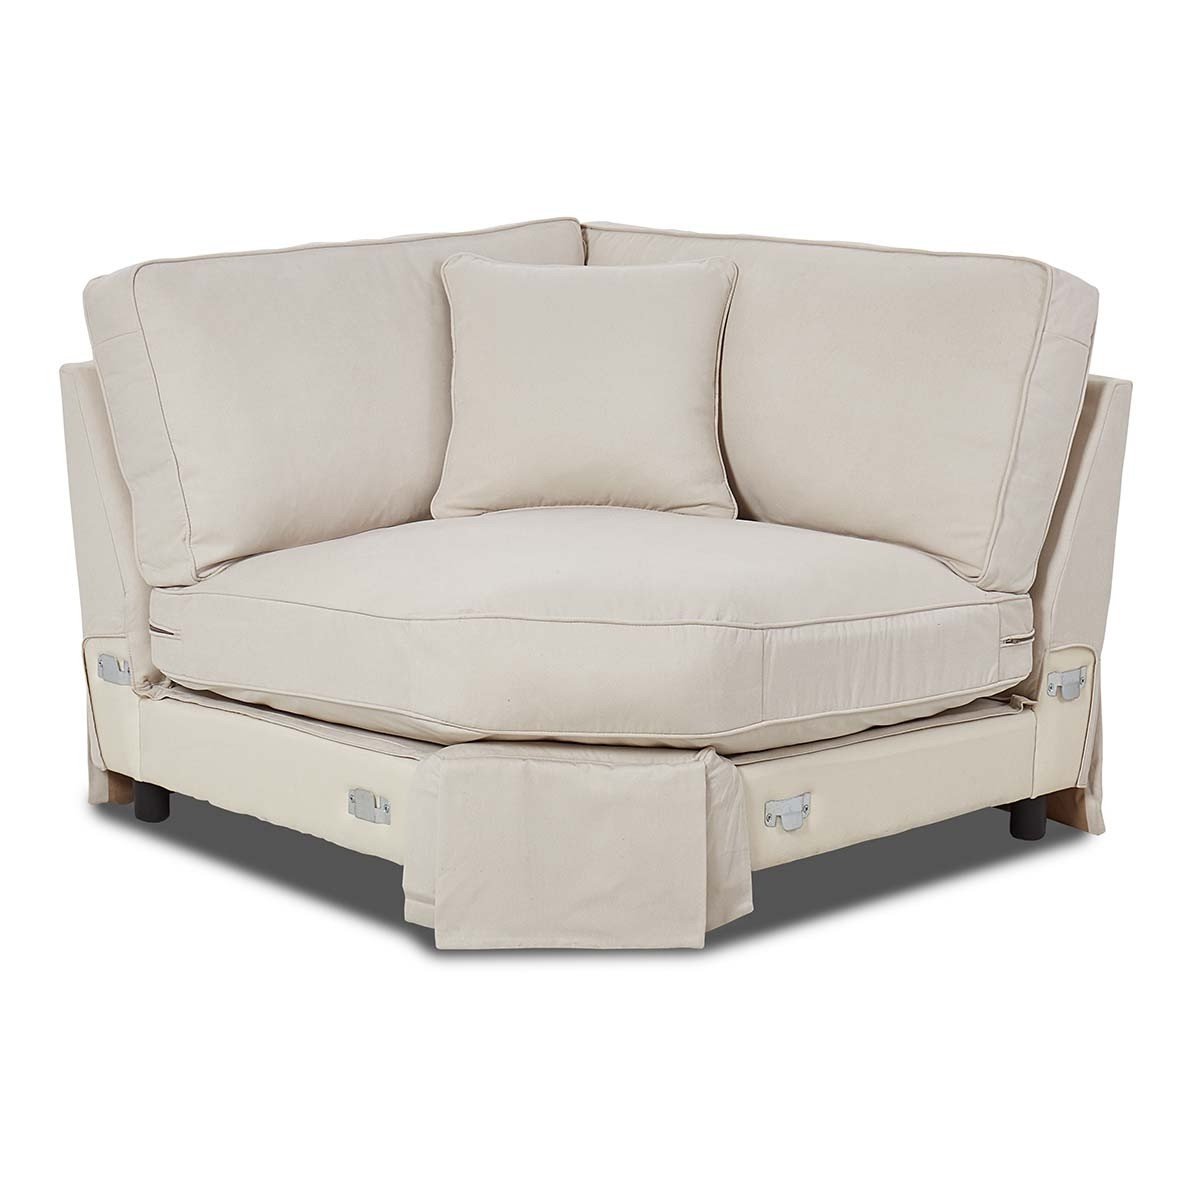 Turdur 2 Piece Sectionals With Laf Loveseat Regarding Best And Newest Knightsbridge Sectional (View 15 of 20)